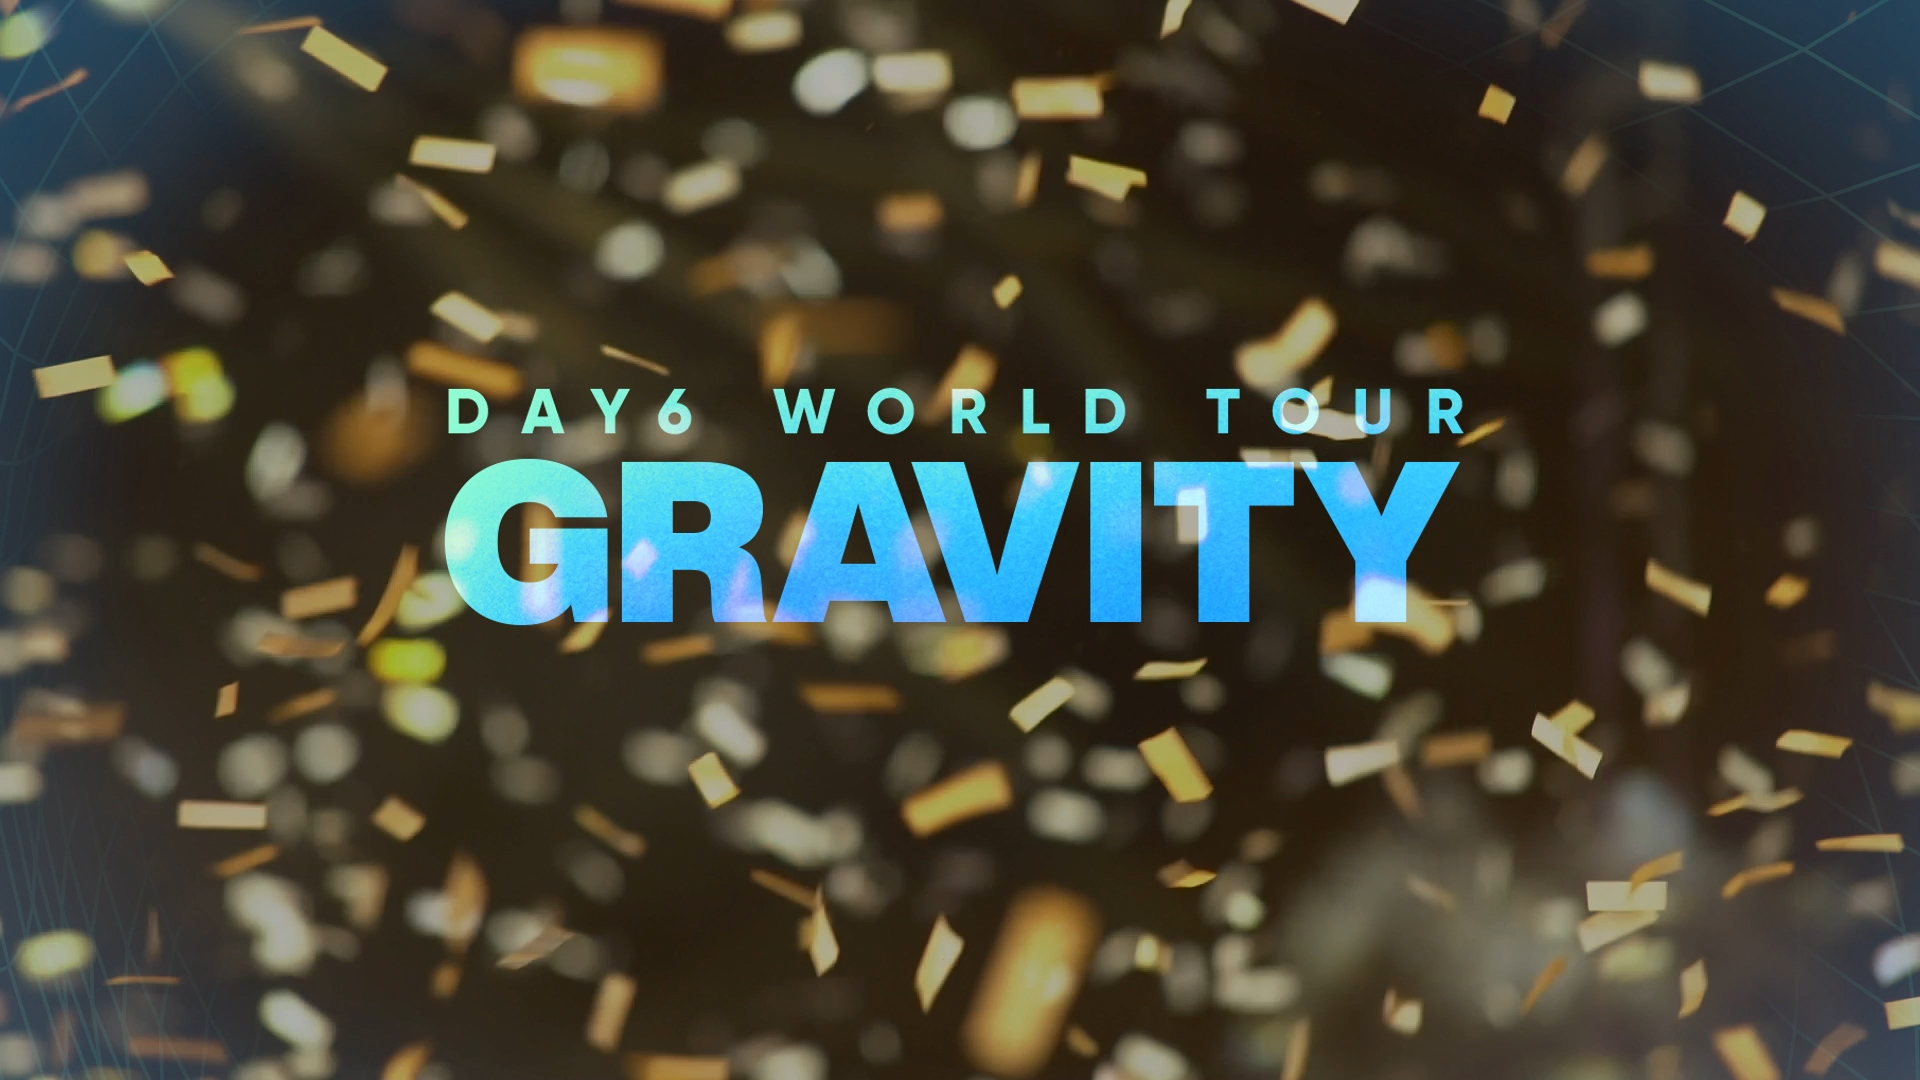 DAY6 WORLD TOUR 'GRAVITY' in SEOUL D-6